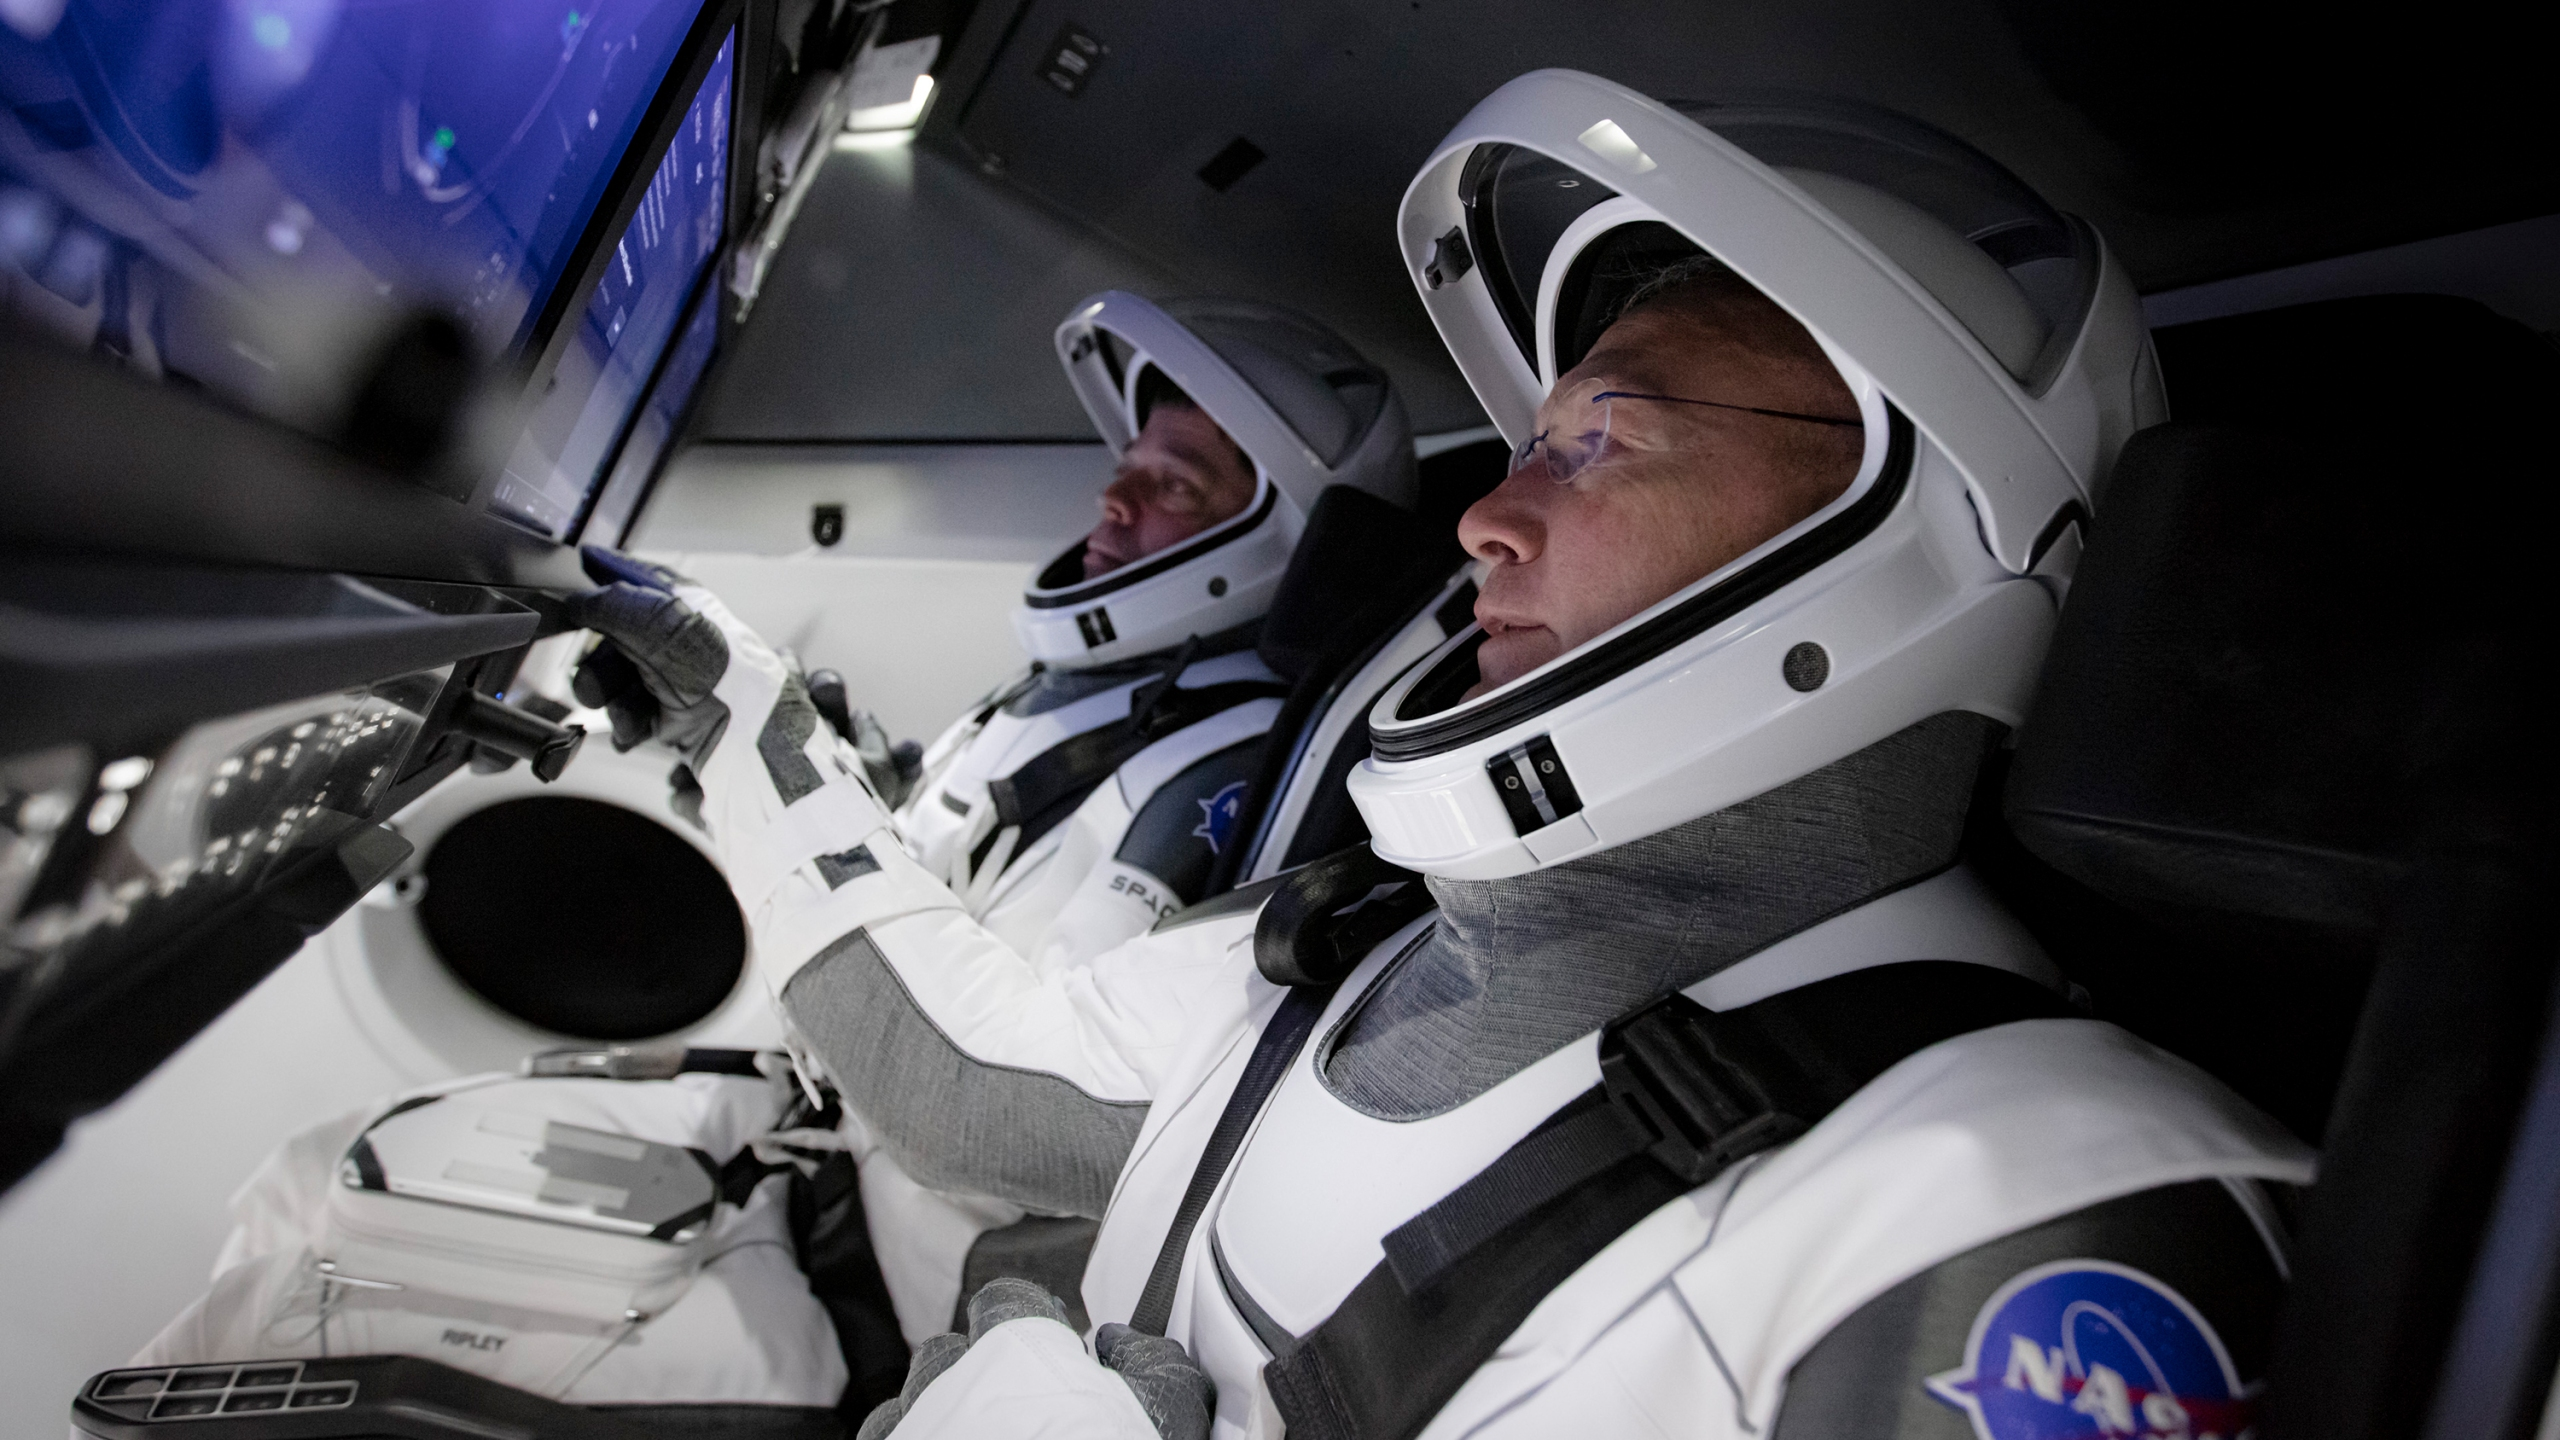 NASA astronauts Bob Behnken, left, and Doug Hurley have spent years learning how to operate SpaceX's Crew Dragon capsule. (SpaceX via CNN Wire)